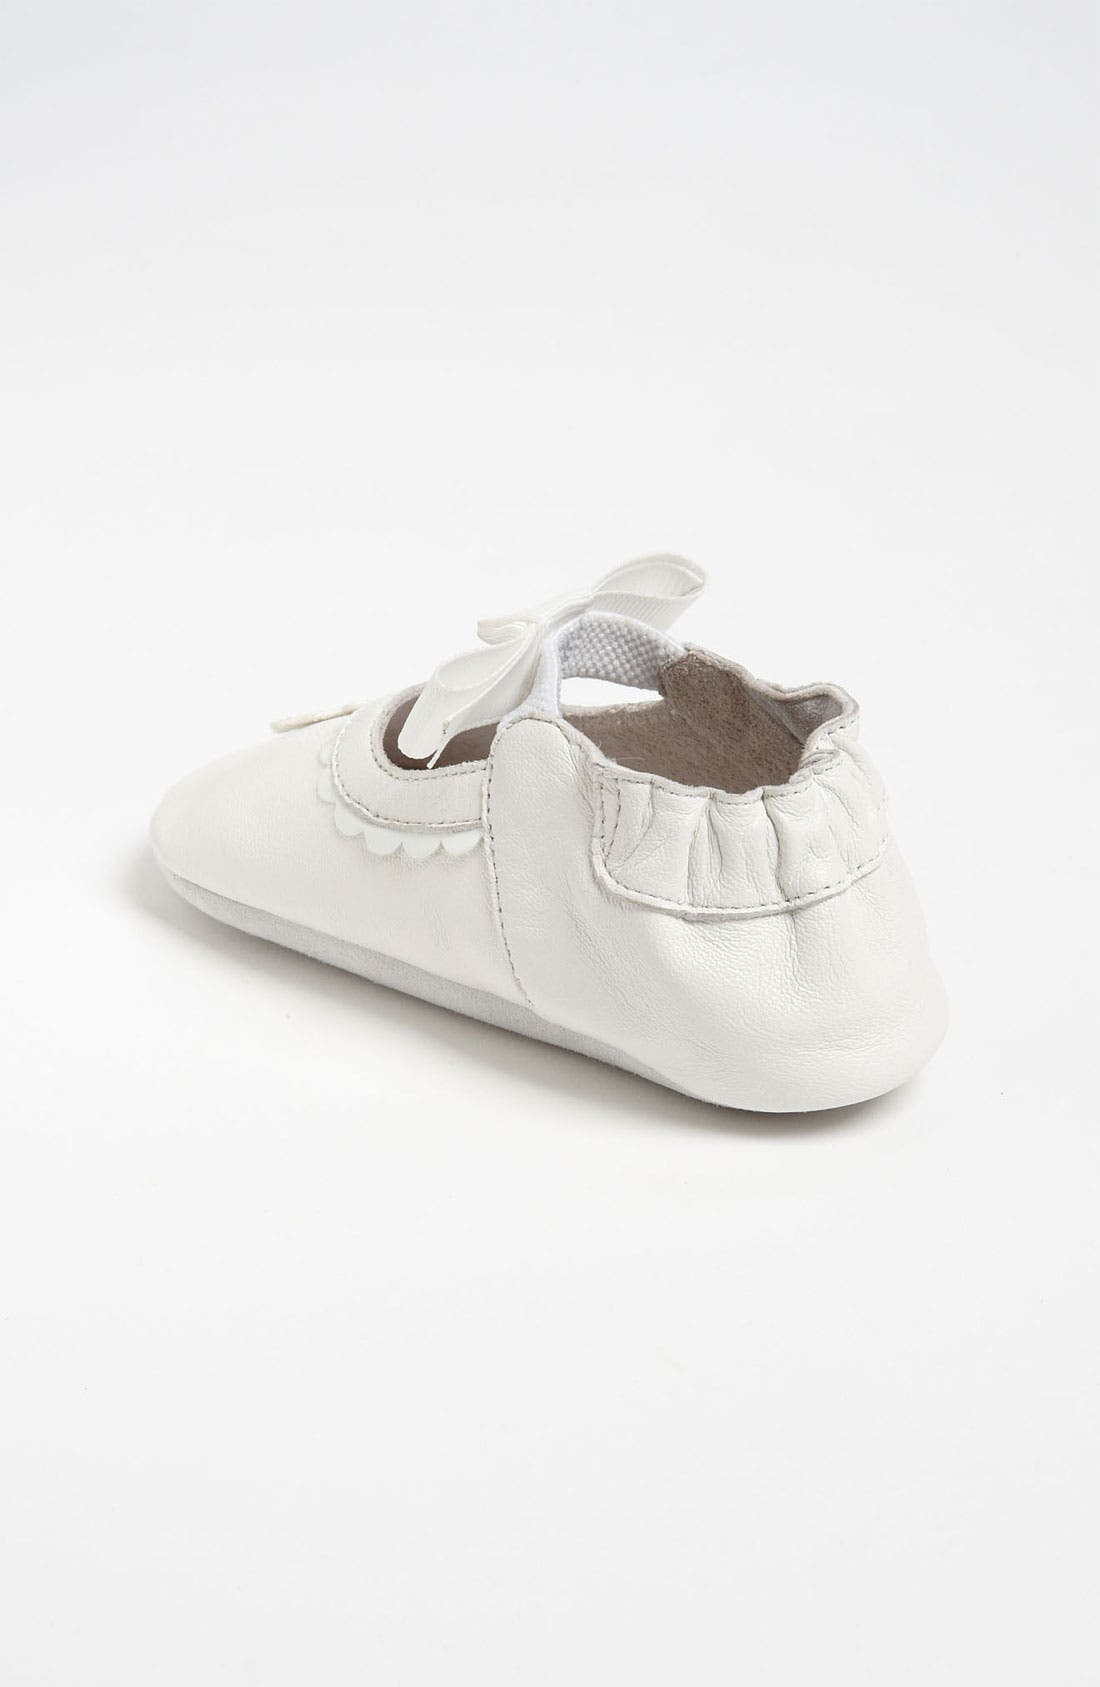 Alternate Image 2  - Nordstrom Baby 'Daisy' Crib Shoe (Infant)